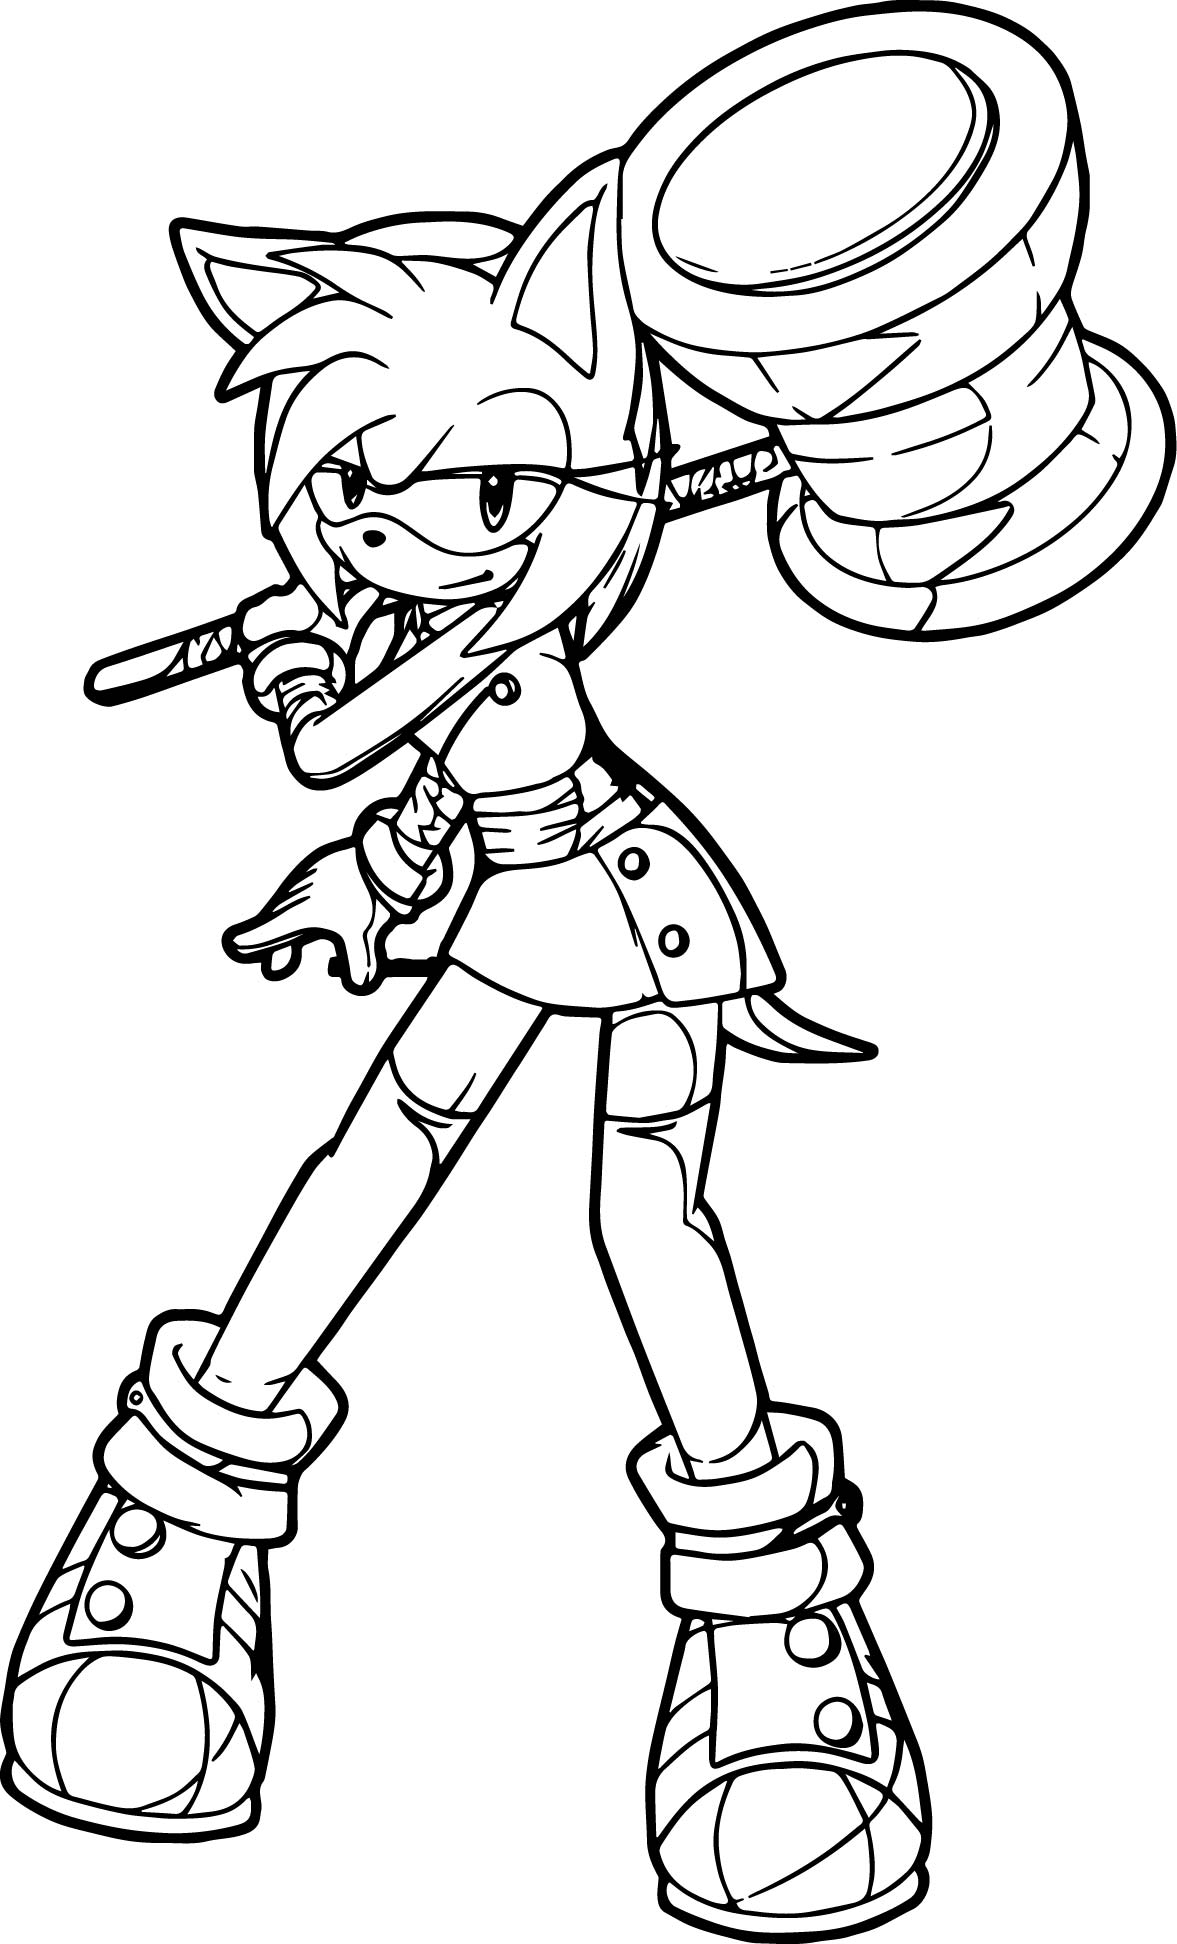 Amy Rose Big Hammer Coloring Page  Wecoloringpage